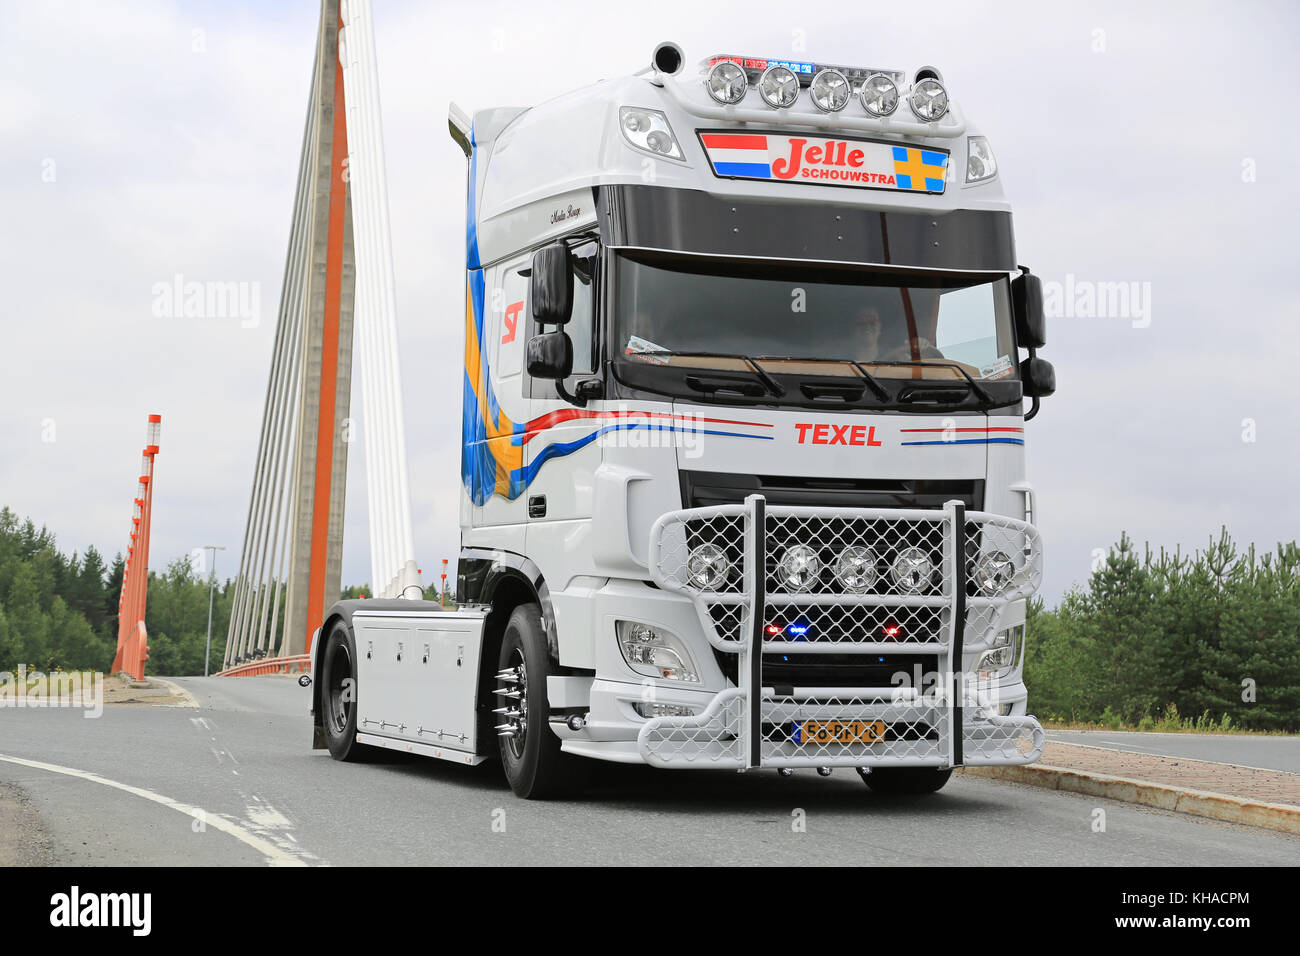 LEMPAALA, FINLAND - AUGUST 6, 2015: DAF XF Jelle Schouwstra takes part in the truck convoy to Power Truck Show 2015 - Stock Image